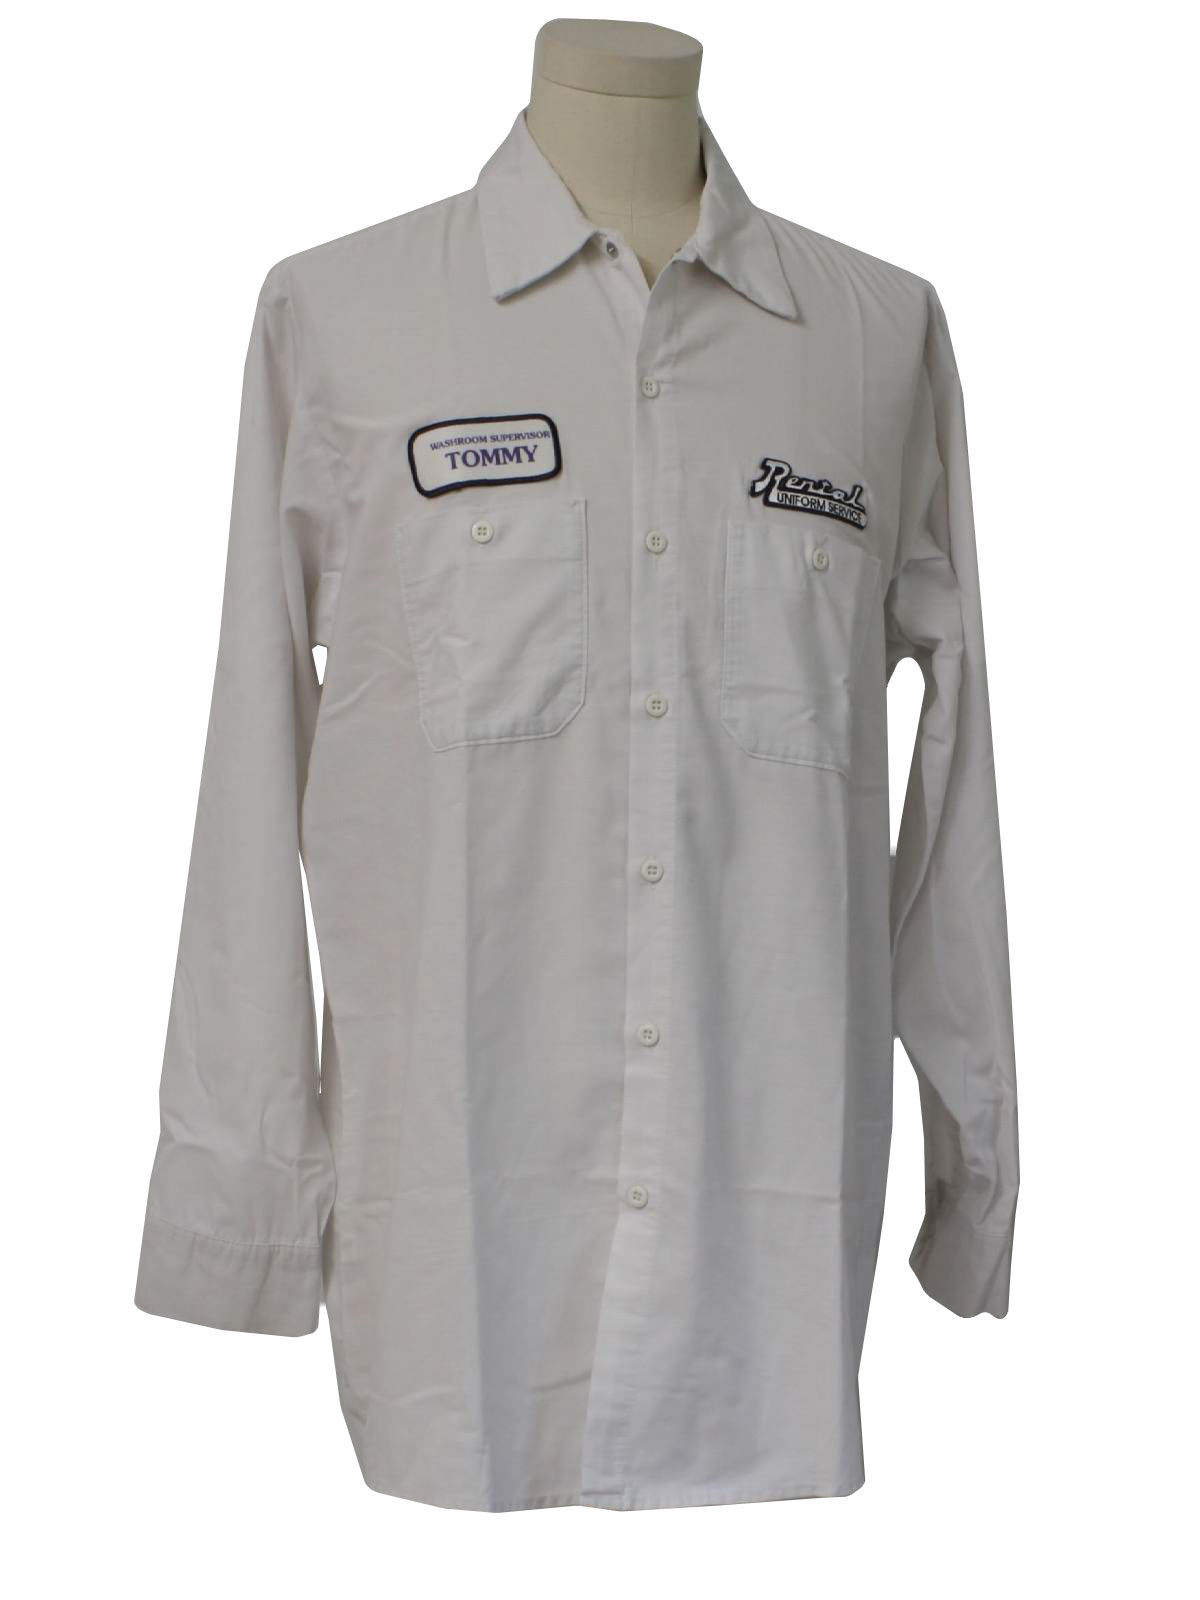 You need a work shirt with hard-wearing fabric and heavy-duty stitching to stand up to the daily stresses of your demanding job. Sears carries uniform work shirts for men from top brands, so you can pick out a work shirt that's comfortable and stylish as well as durable.